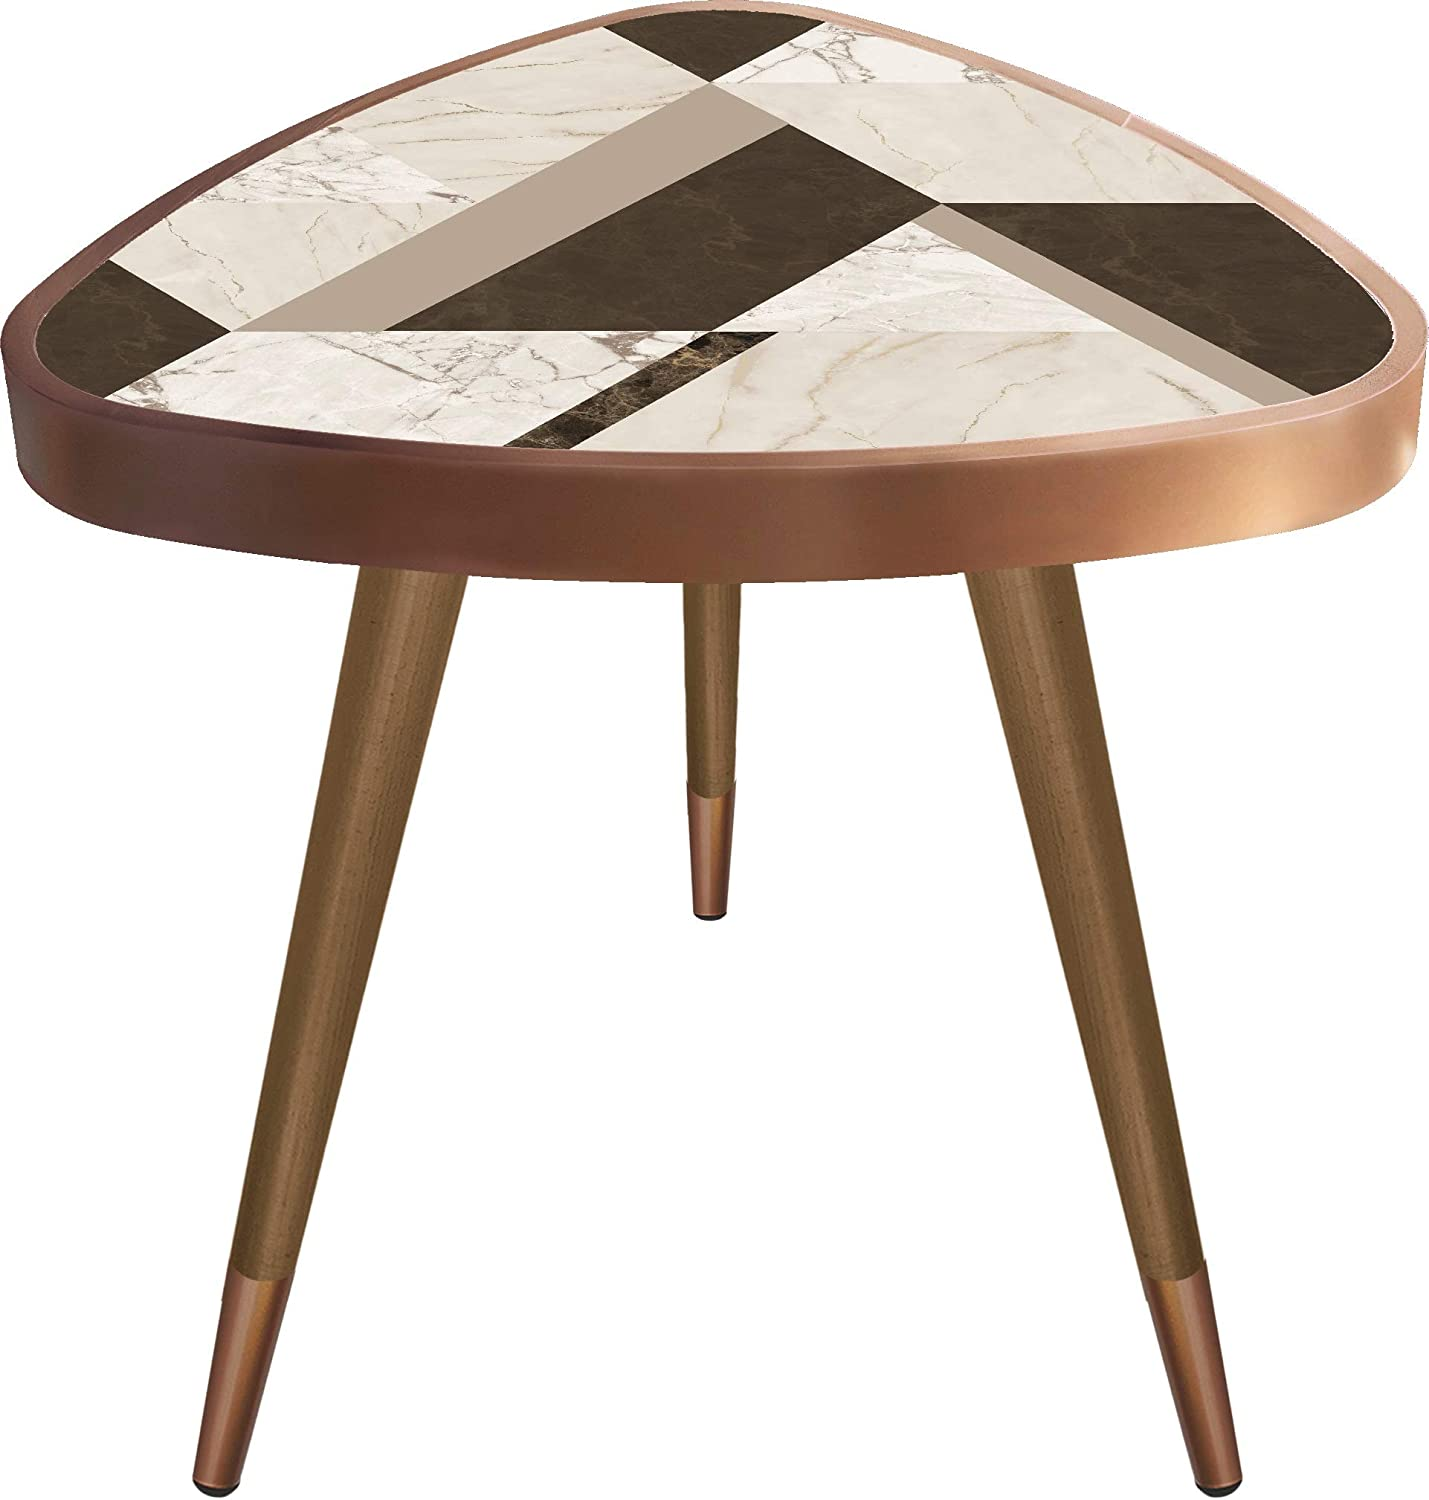 White and Brown Patterned Print Triangle Wooden Design Vintage,Retro, Mid-Century Modern Design Wooden Coffee Table, Cocktail Table for Living Room, Bedroom or Home Office